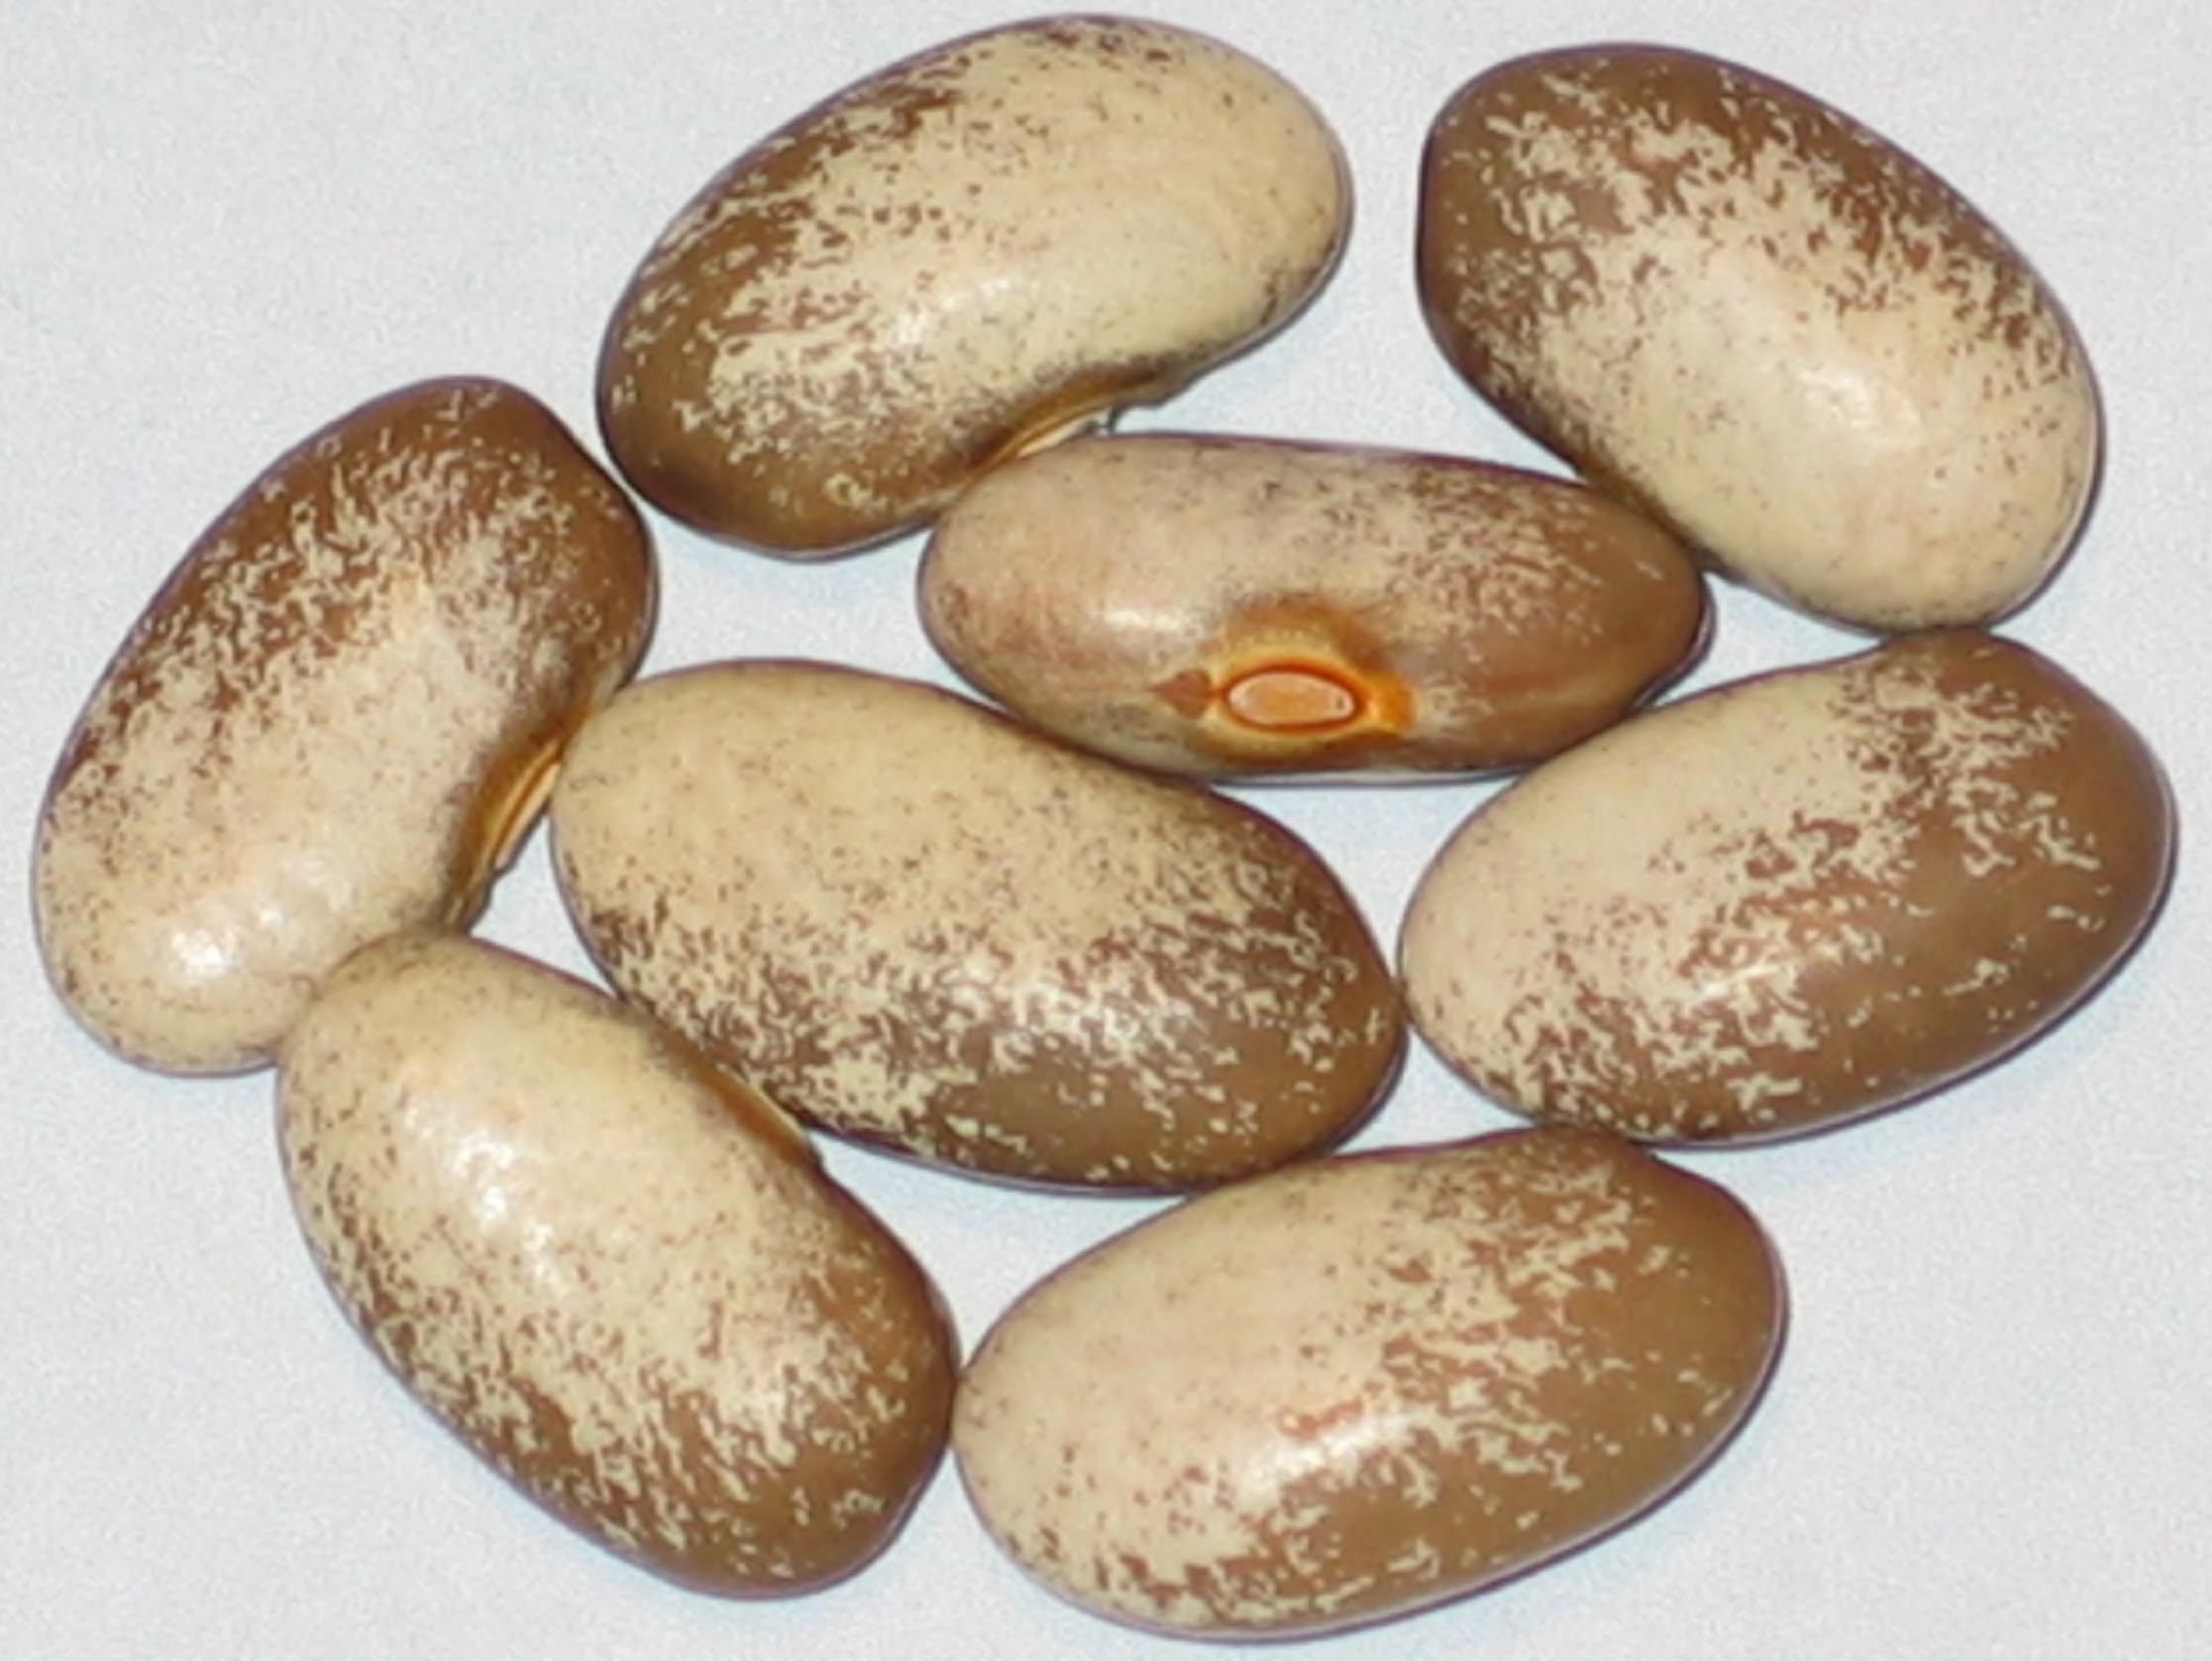 image of Logan Giant beans